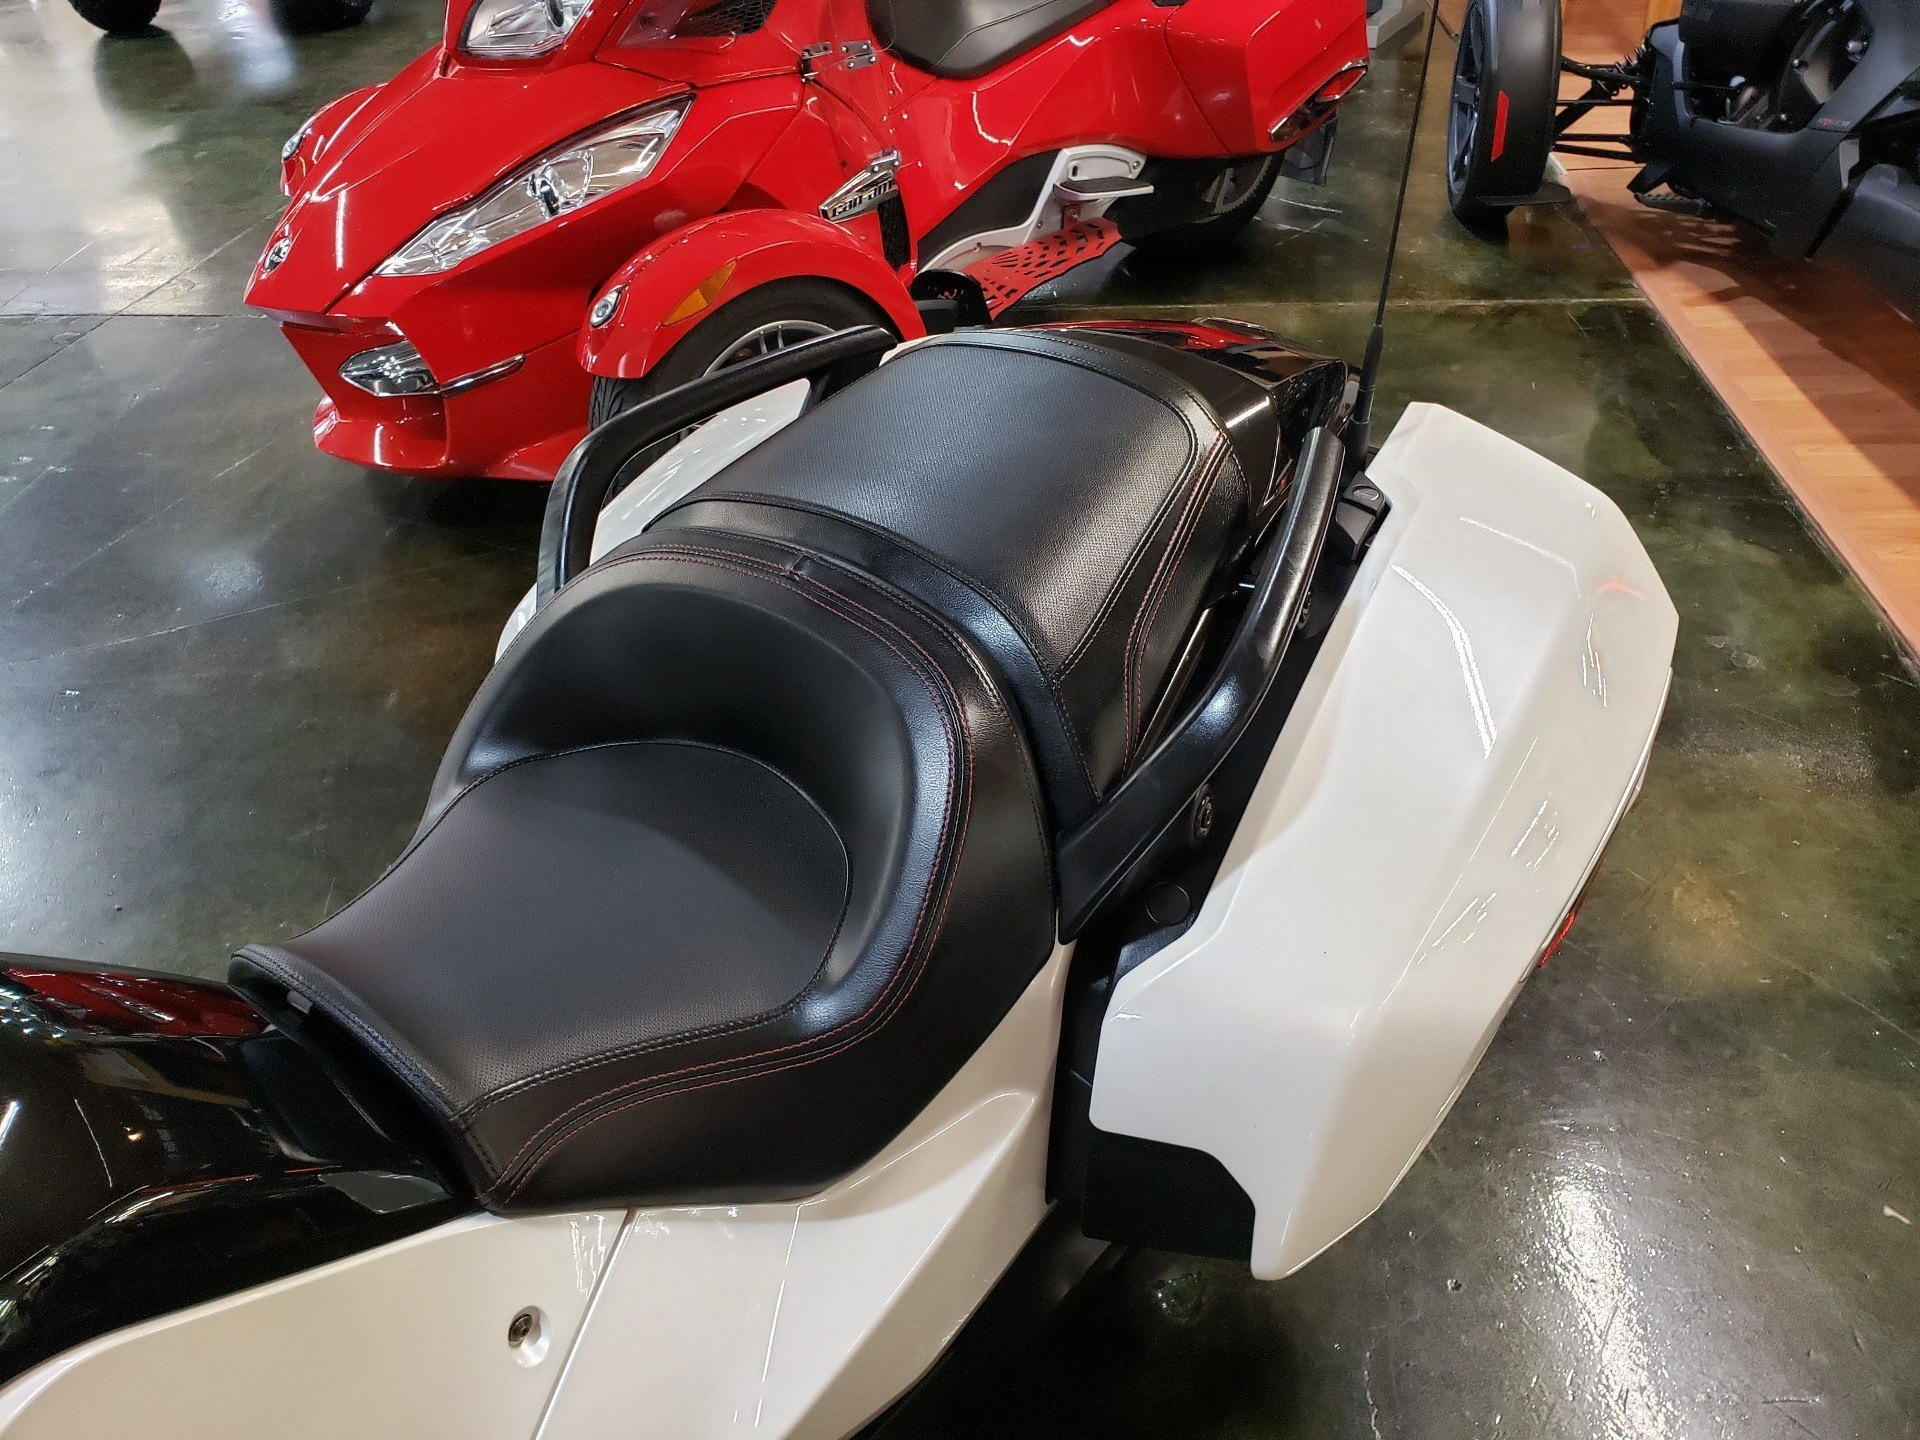 2016 Can-Am Spyder F3-T SE6 w/ Audio System in Louisville, Tennessee - Photo 6